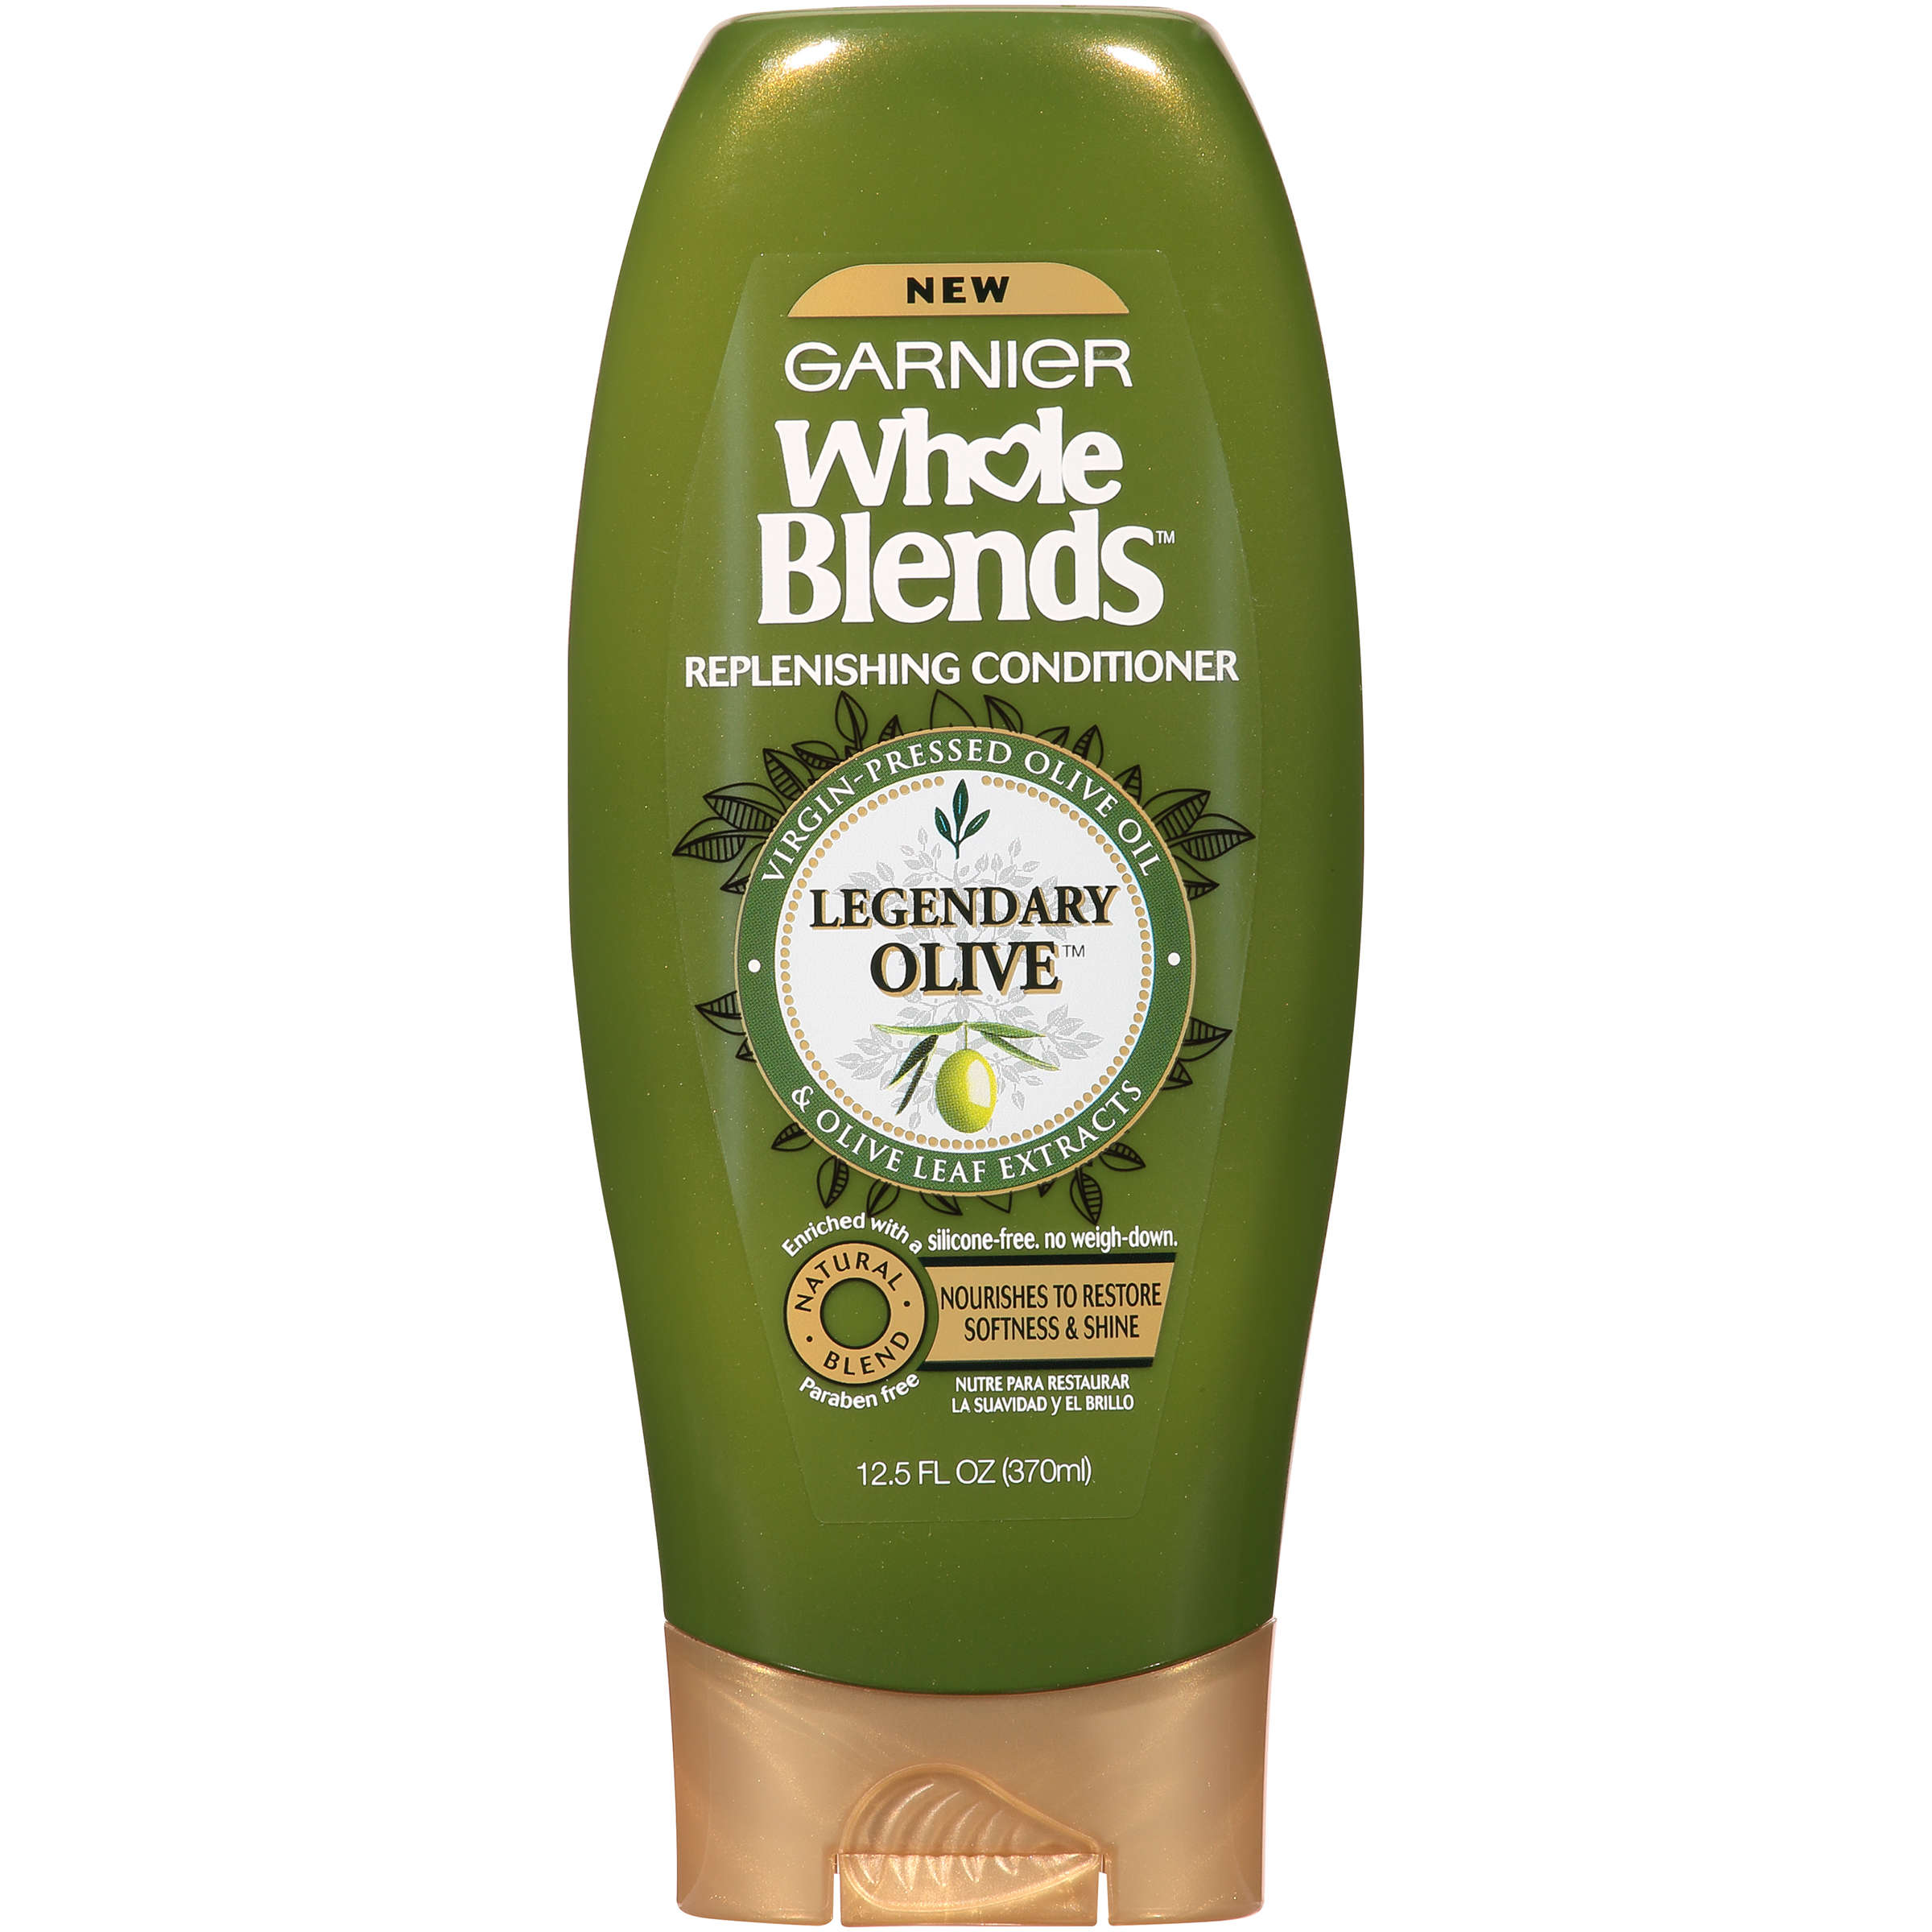 Garnier Whole Blends Replenishing Conditioner, 12.5 Fl Oz